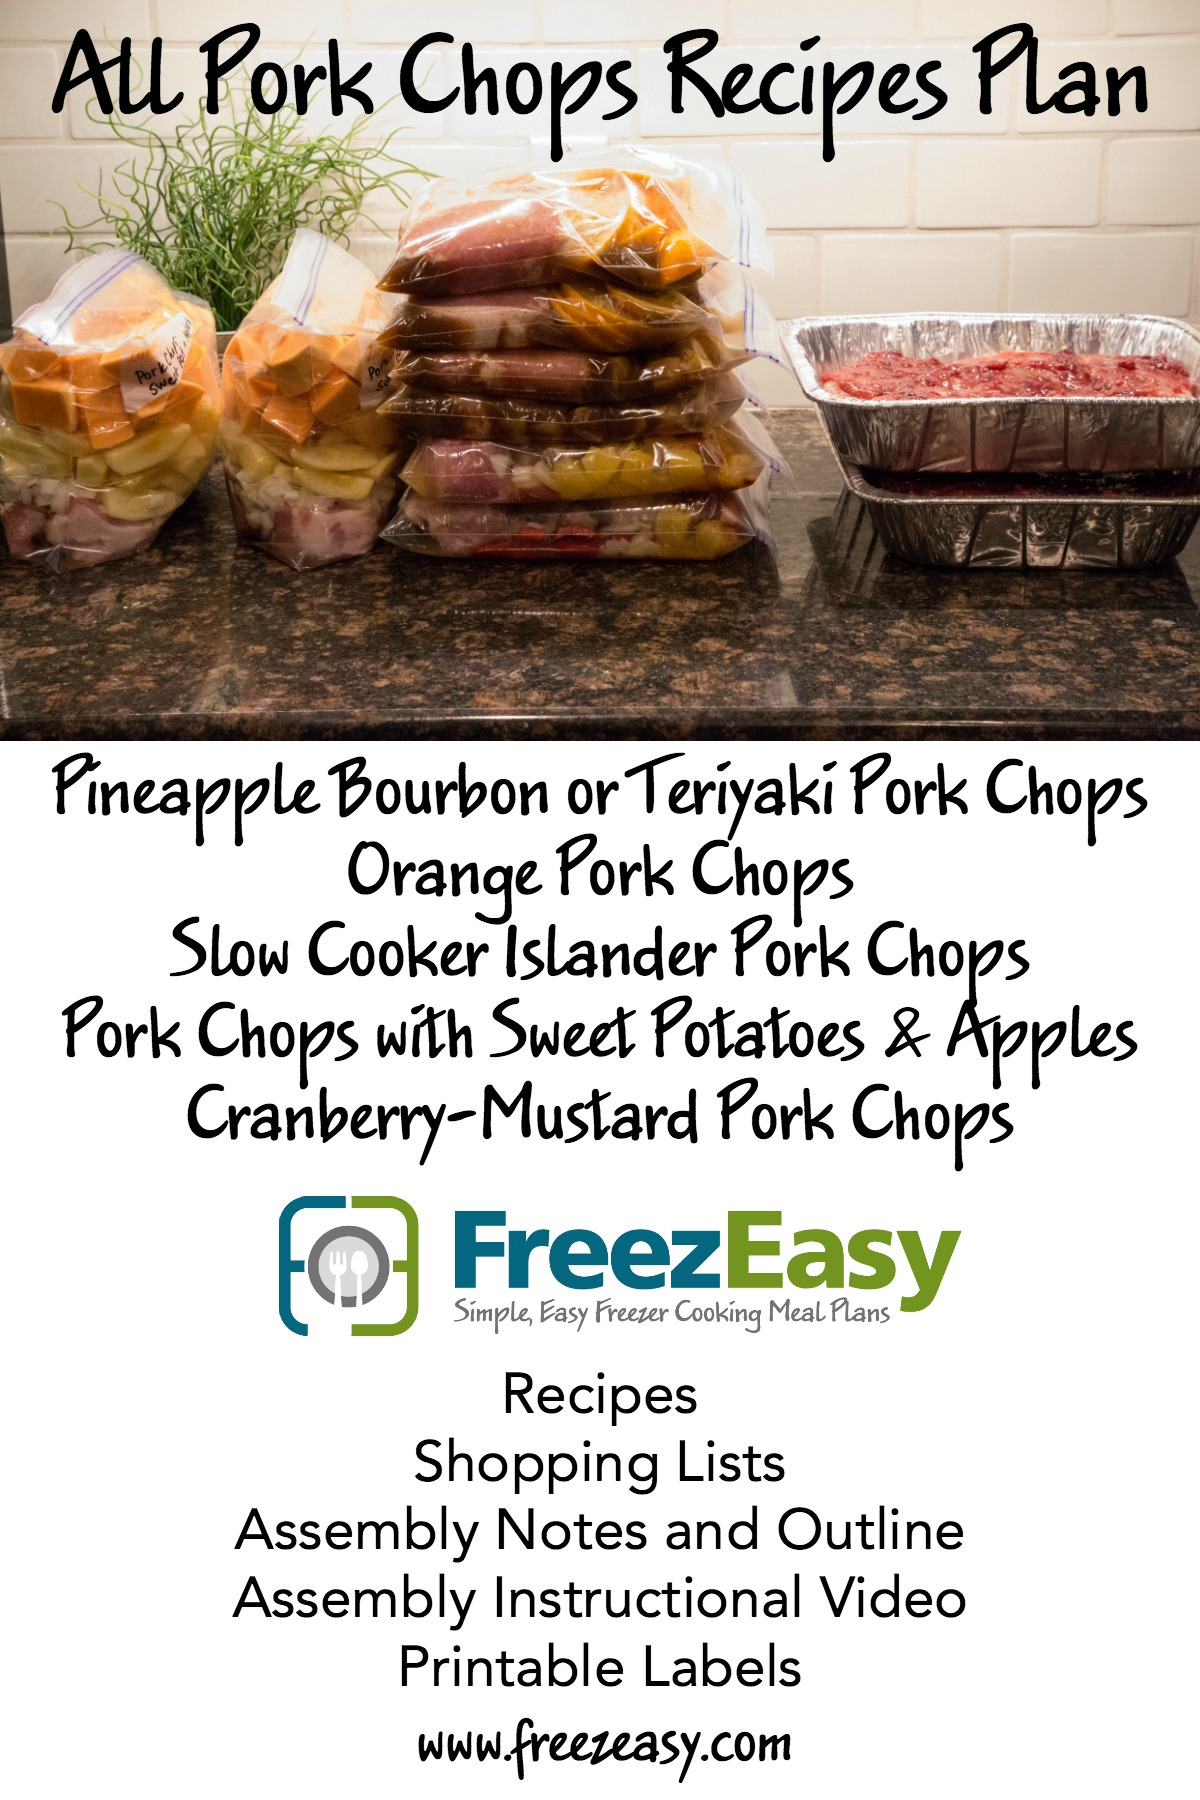 FreezEasy All Pork Chops Details